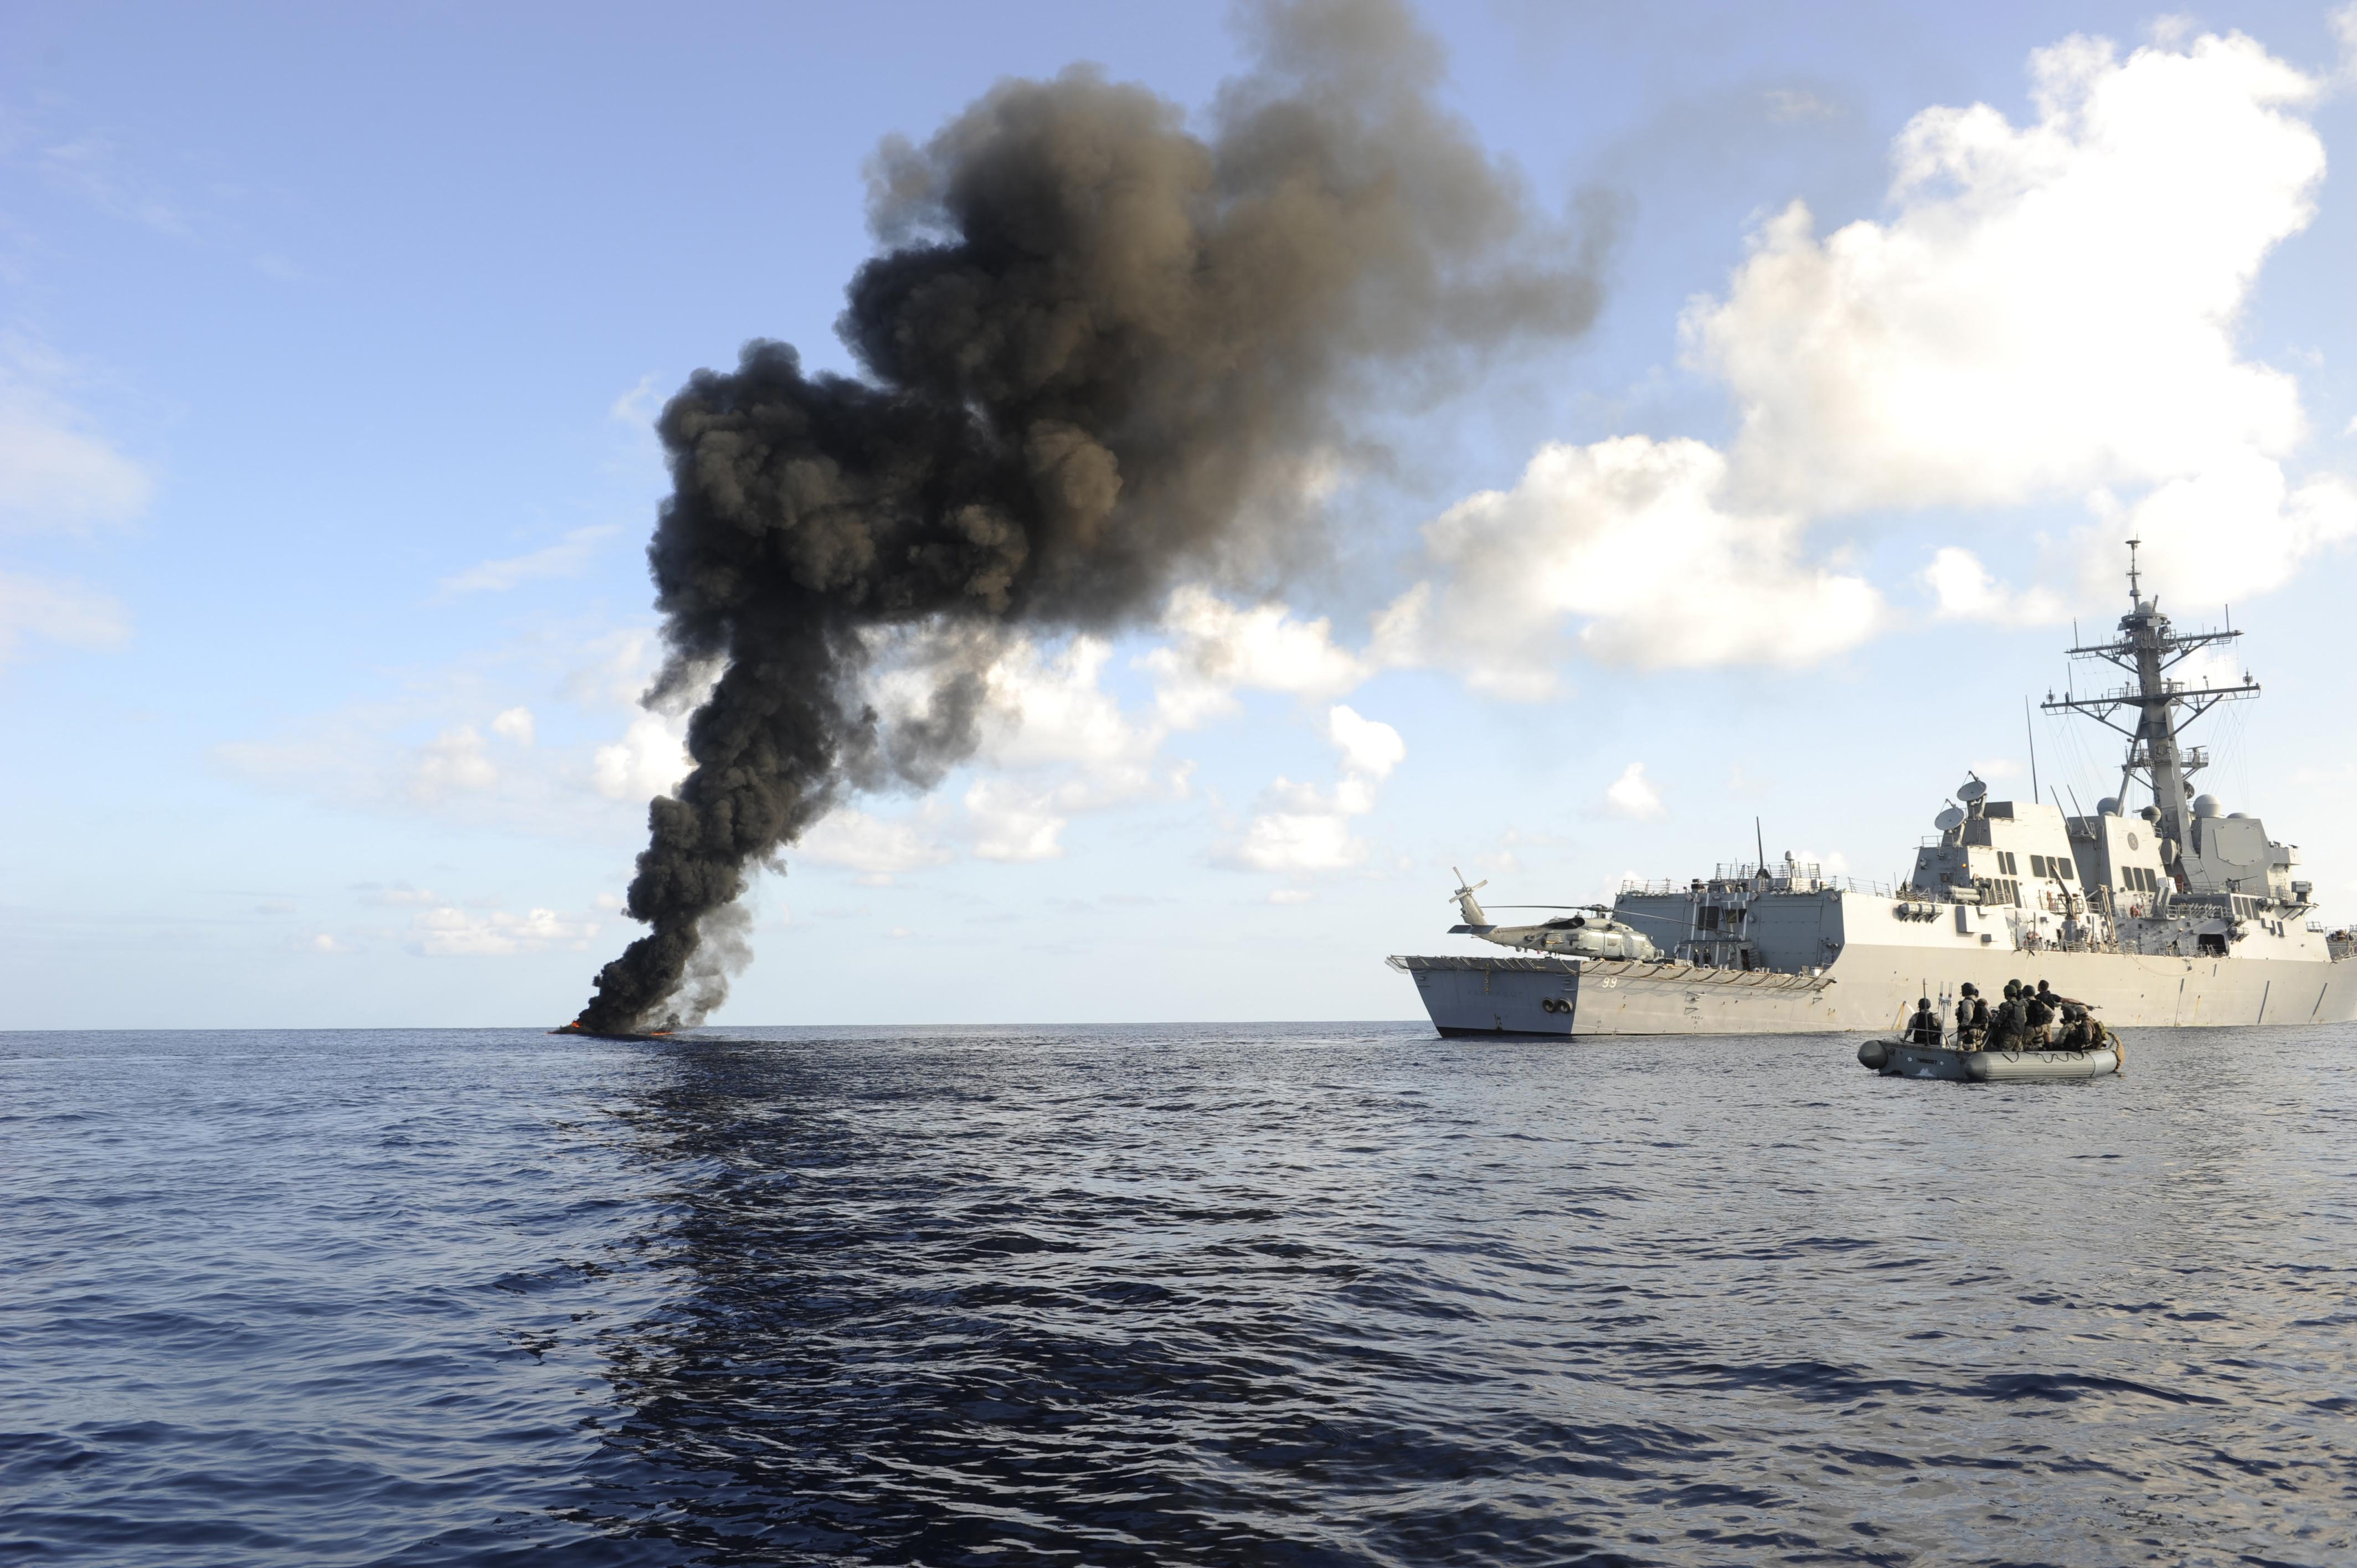 The Arleigh Burke-class guided missile destroyer USS Farragut (DDG 99) passes by the smoke from a suspected pirate skiff it disabled March 31, 2010 in the Gulf of Aden.  (Getty)